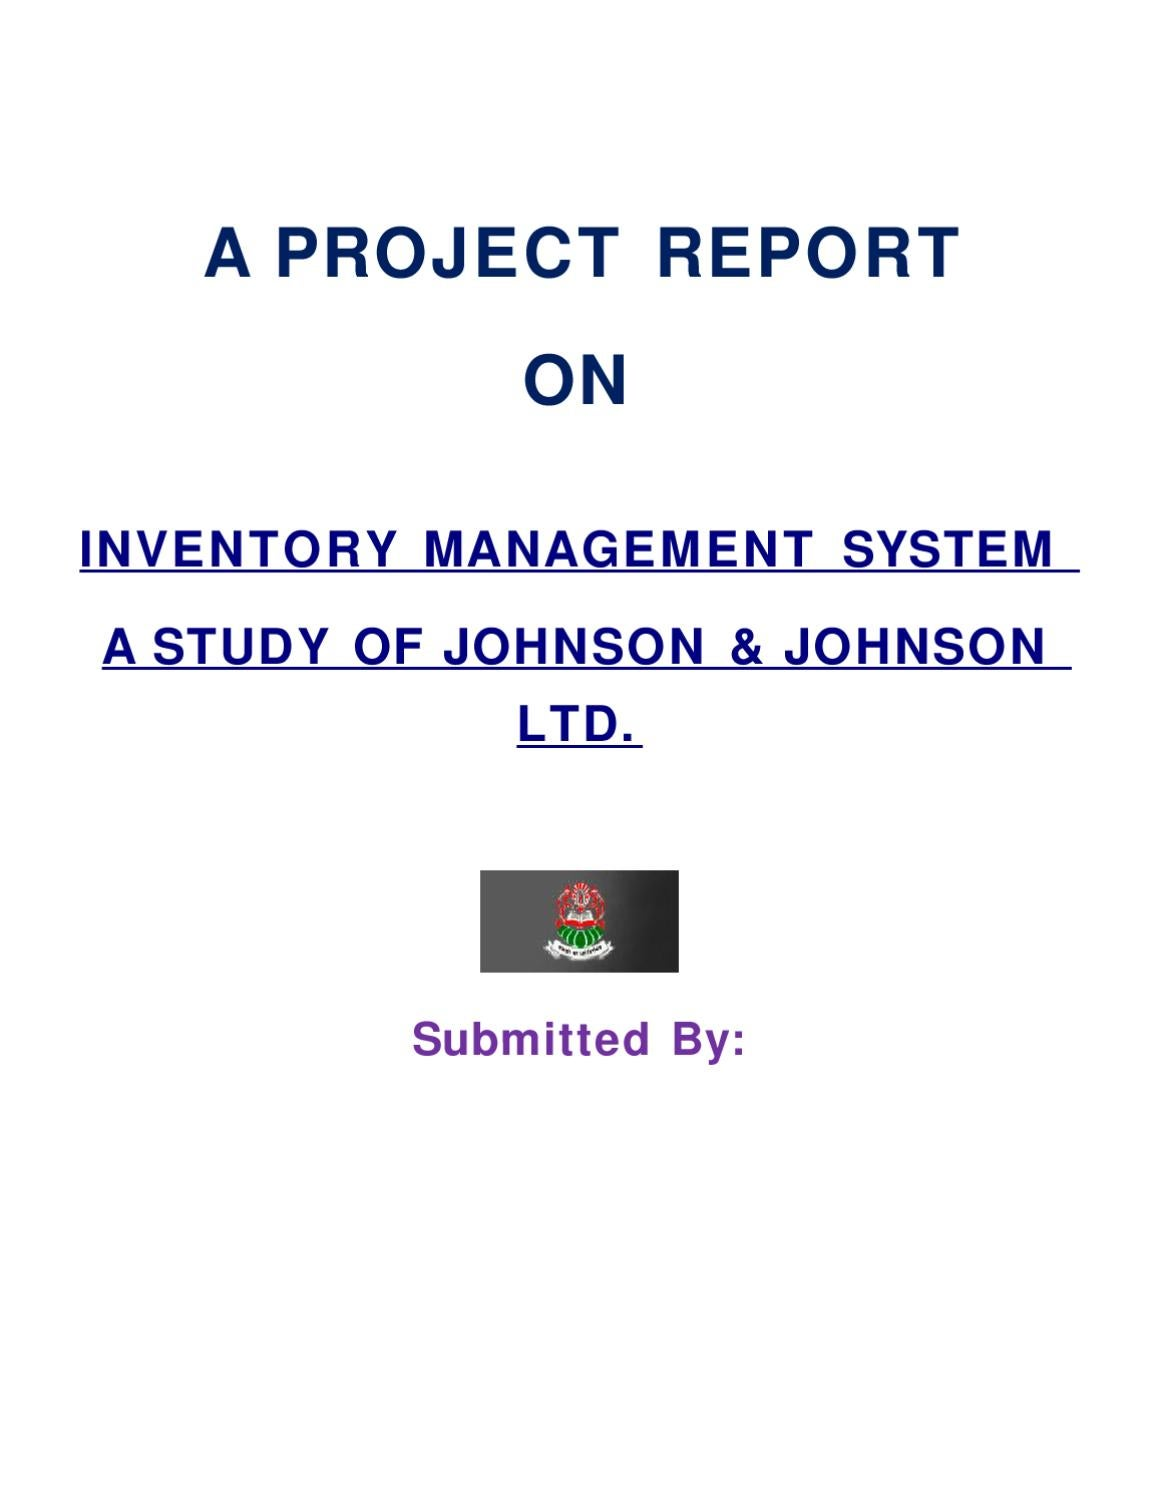 Research on inventory management